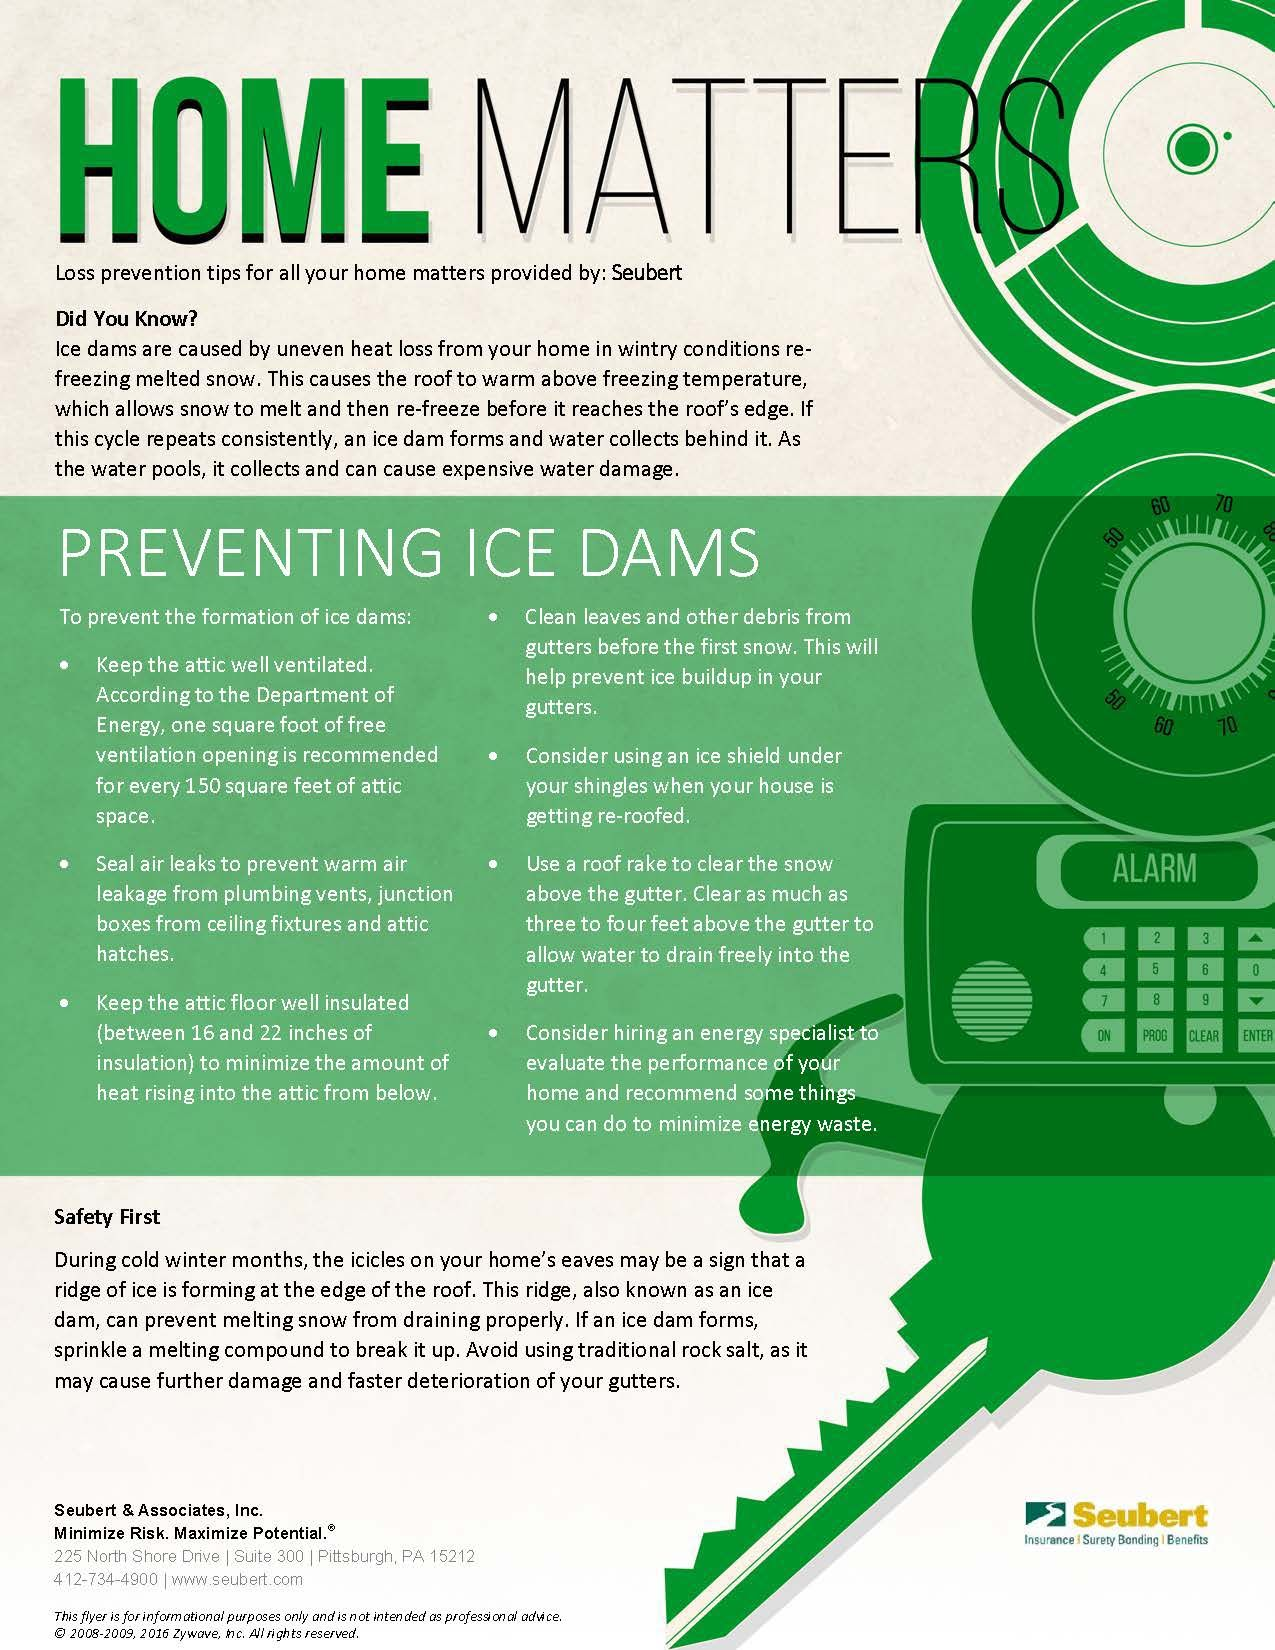 Home Matters: Preventing Ice Dams